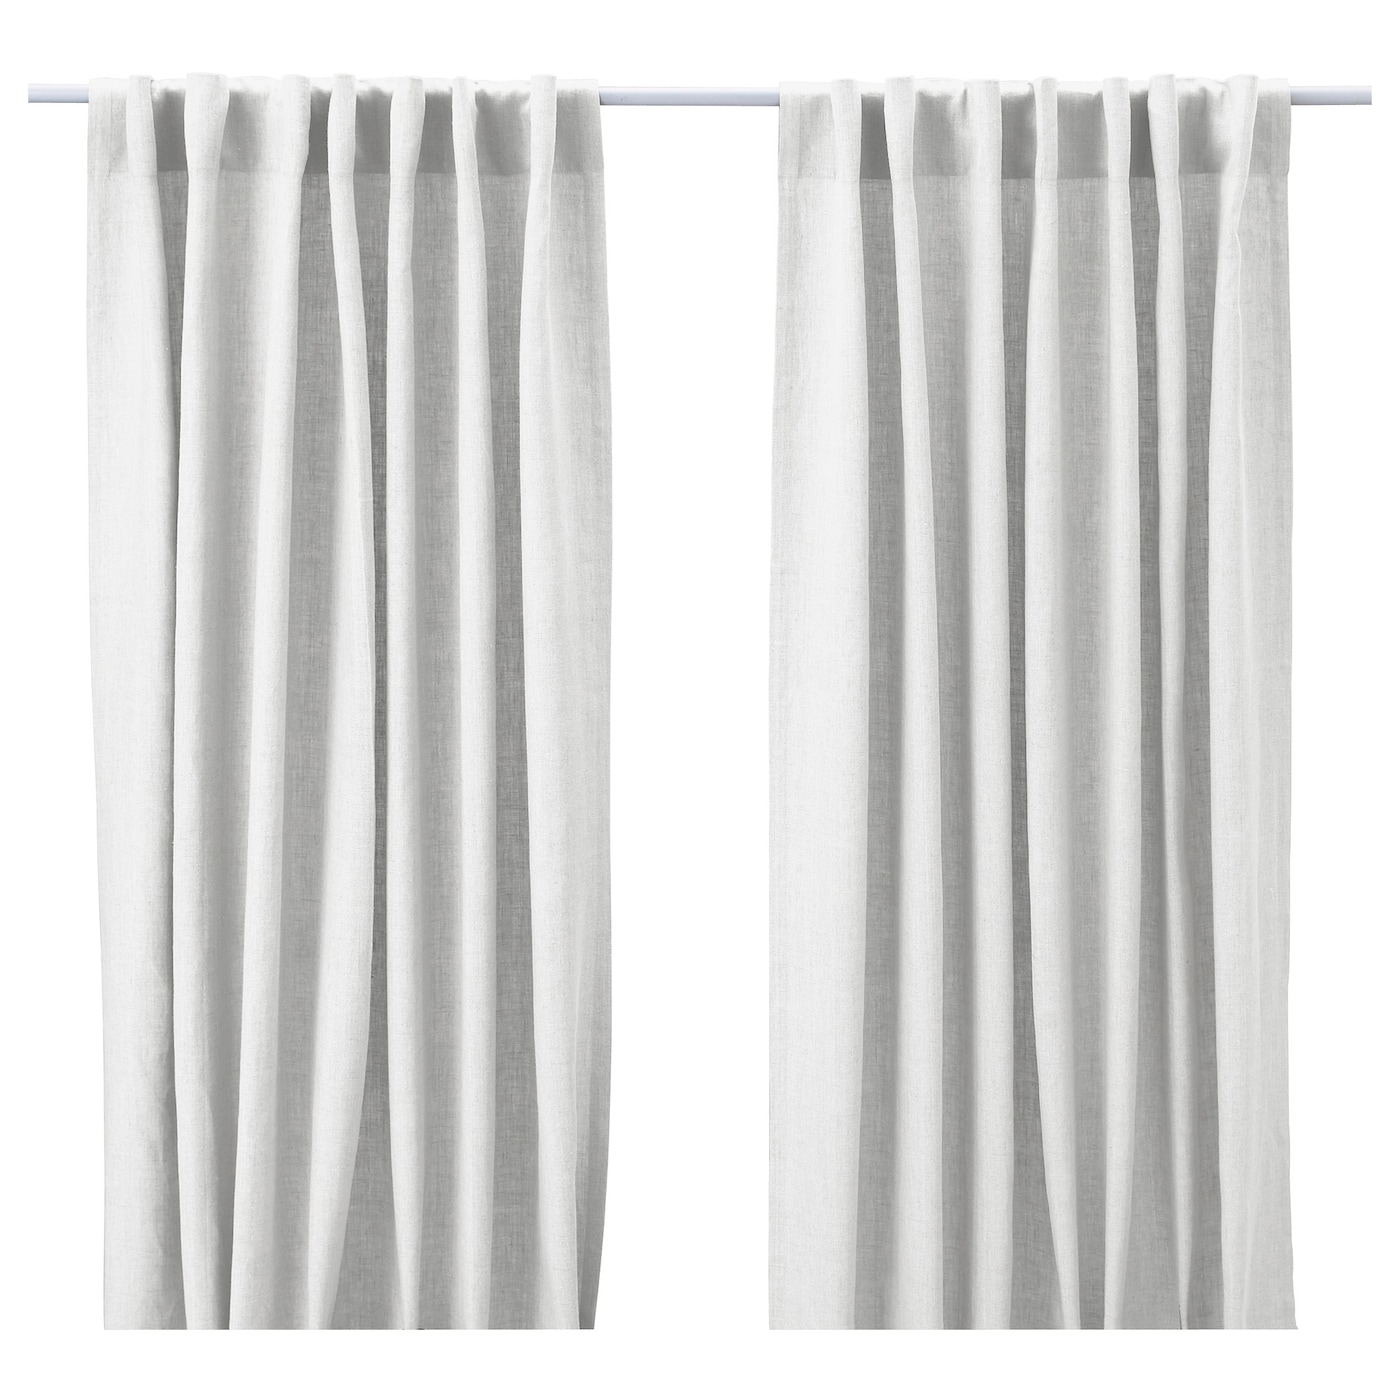 Aina curtains 1 pair white 145x250 cm ikea for White curtains ikea